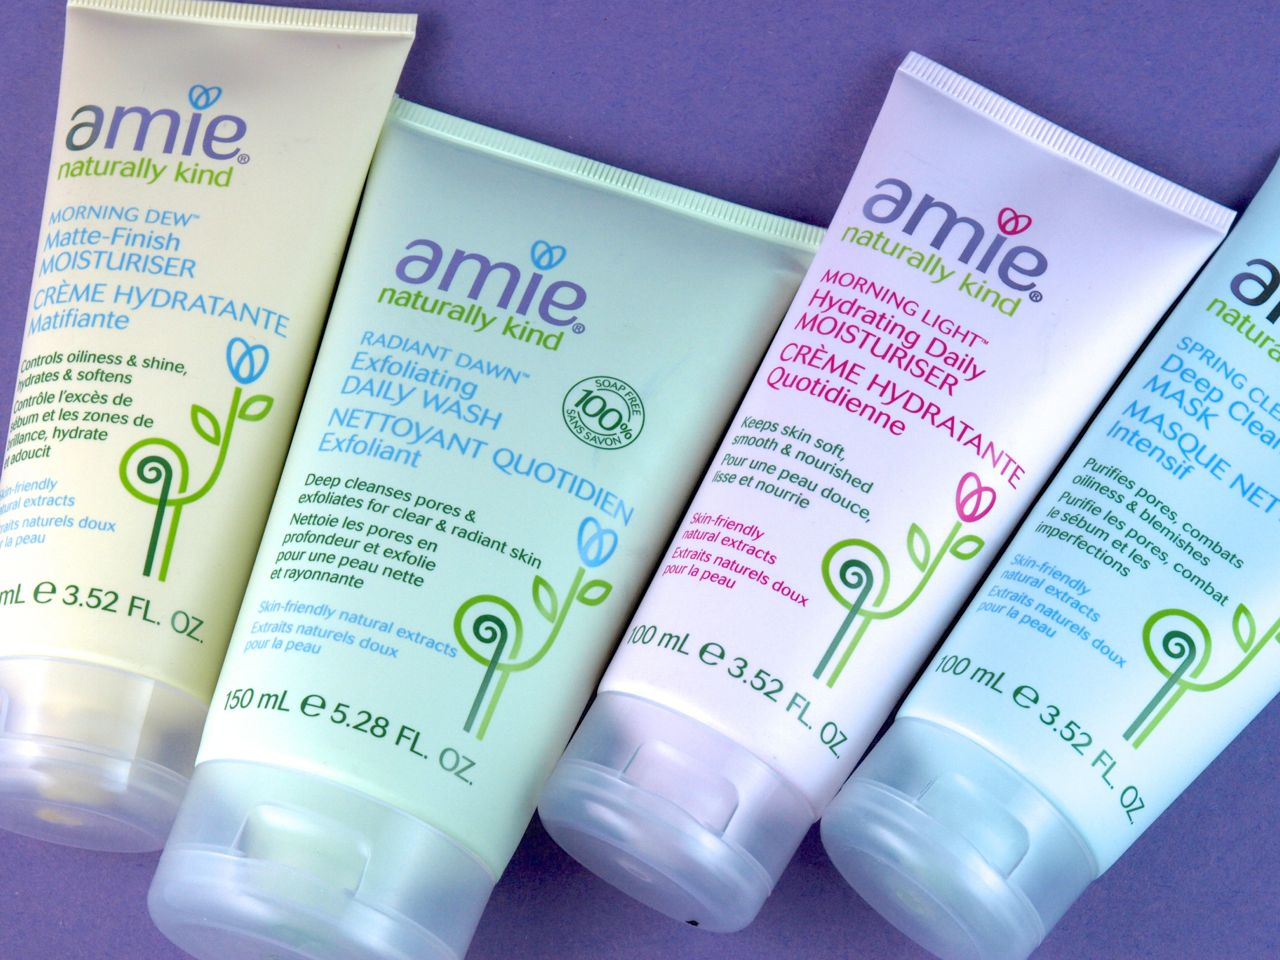 Amie Natural Skincare Products Review - Curiously Carmen